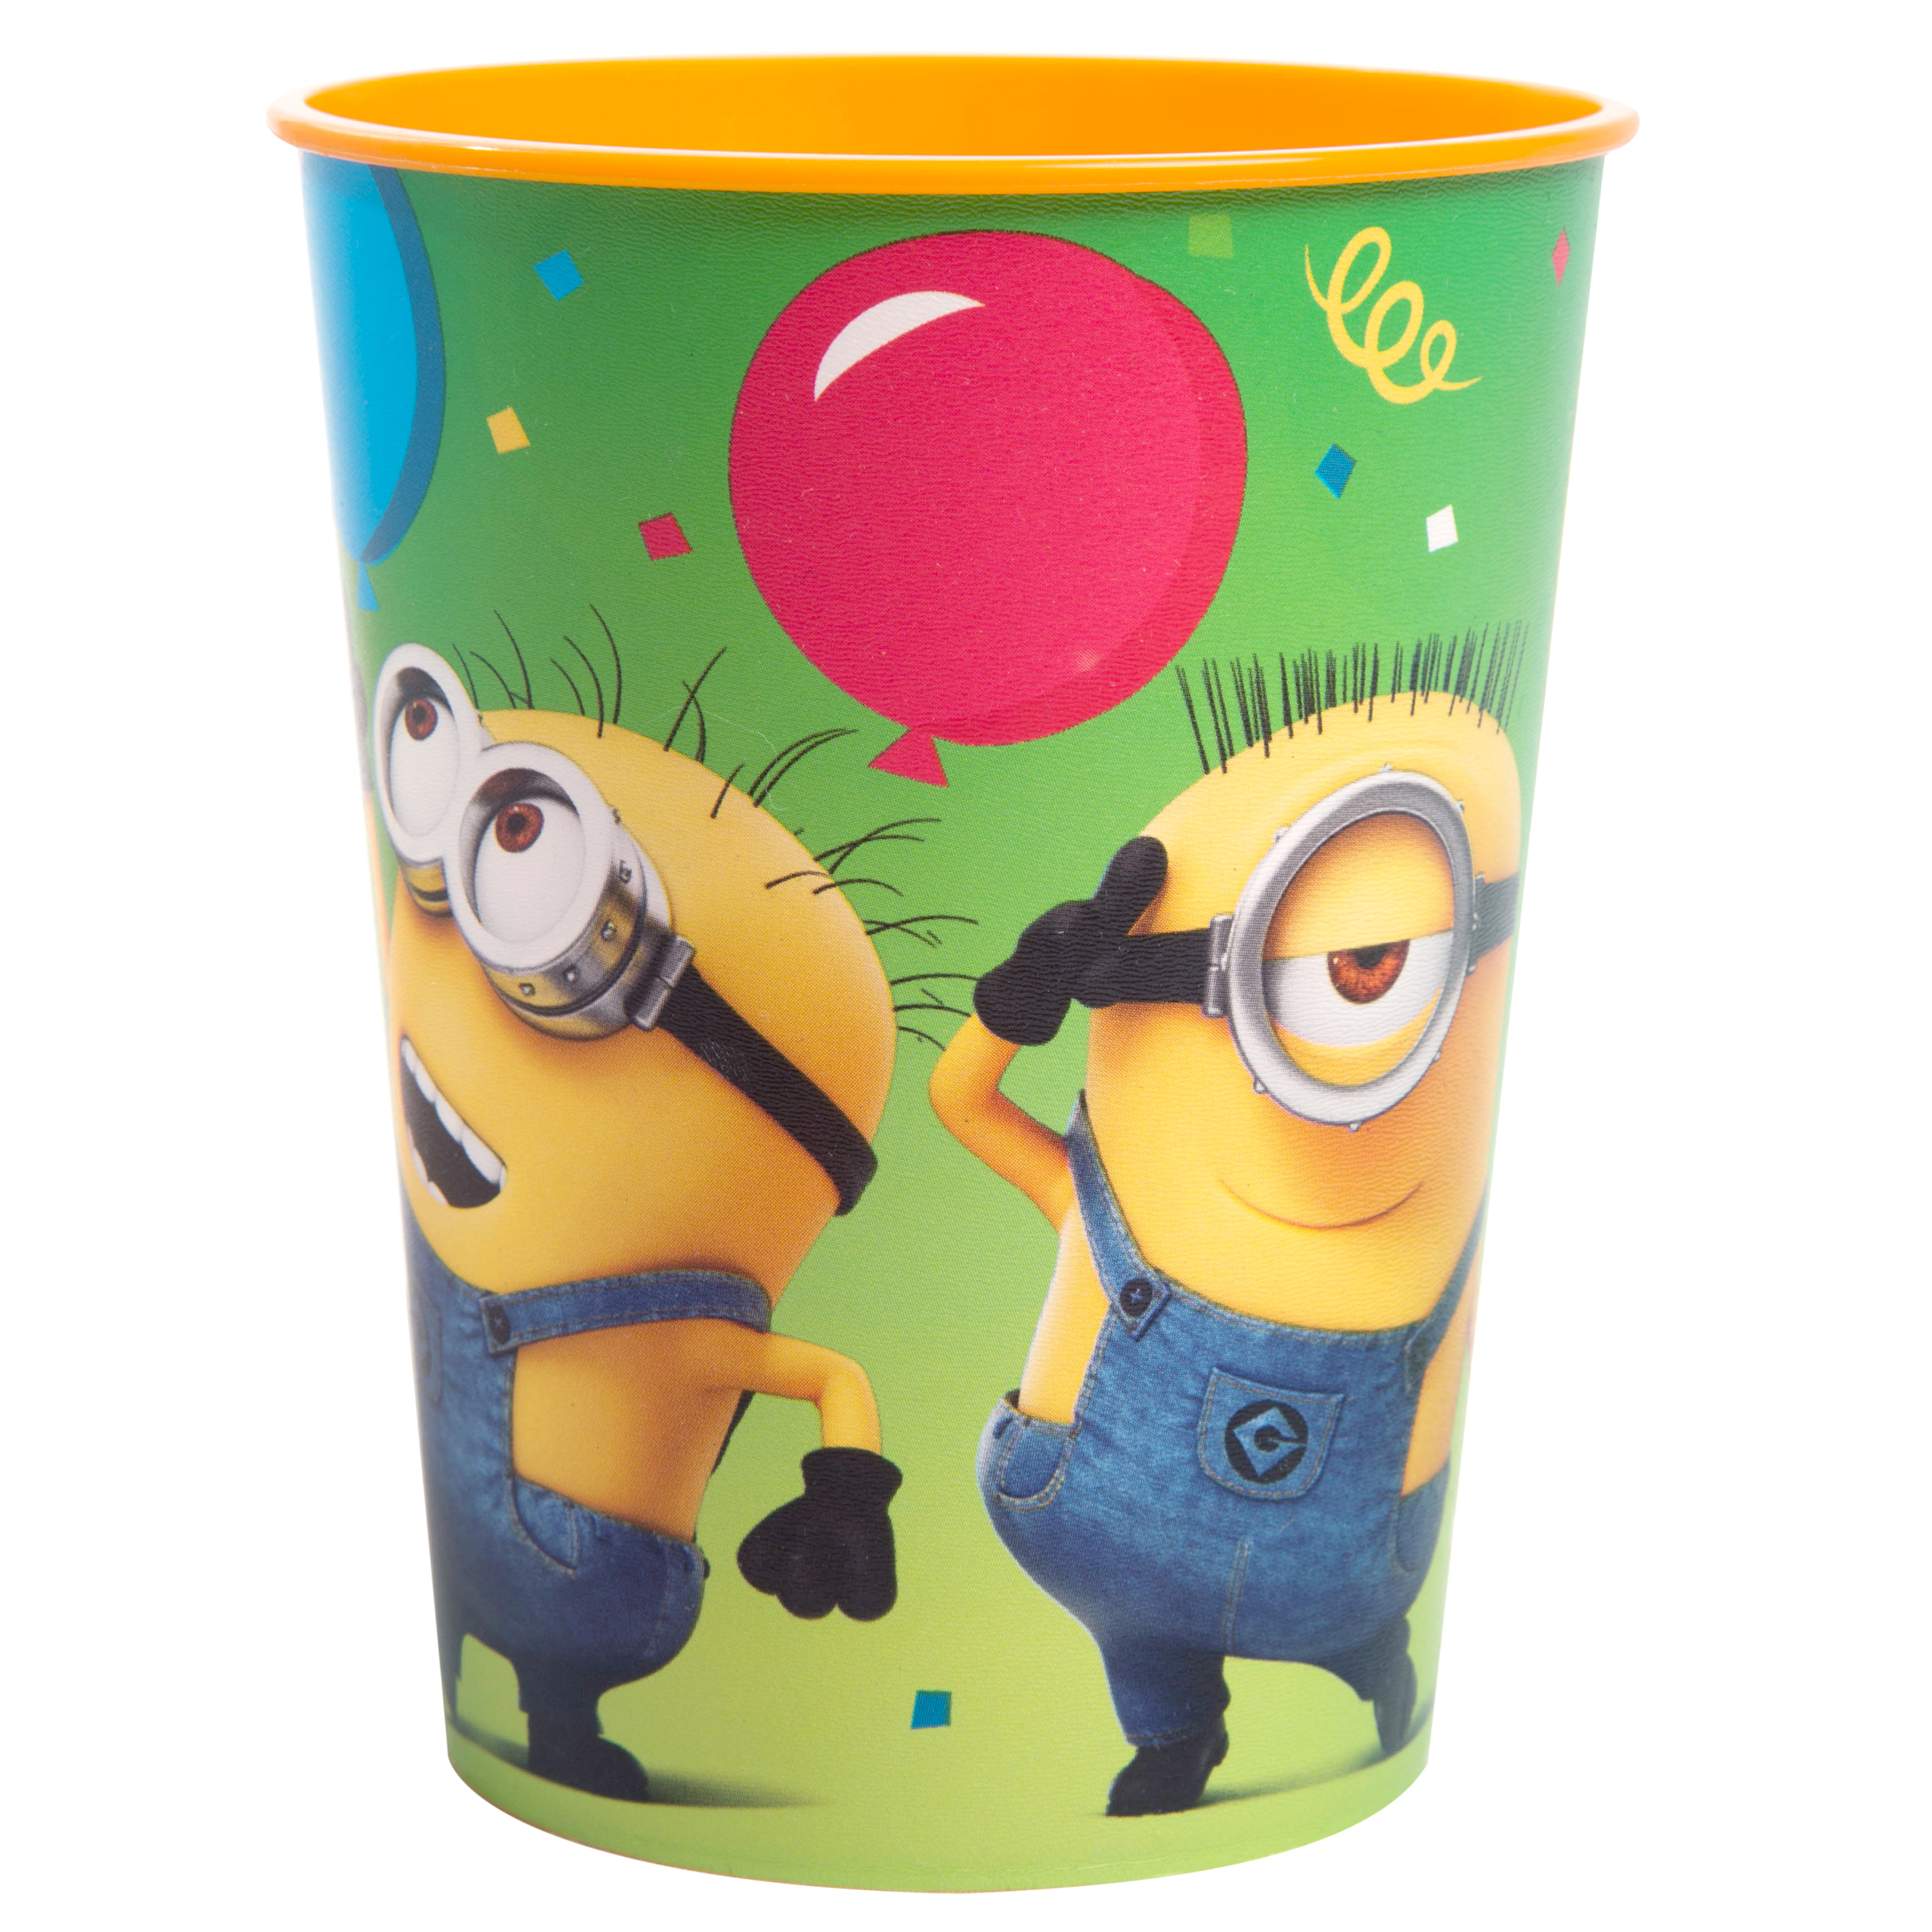 16oz Despicable Me Minions Plastic Stadium Cup, 1ct